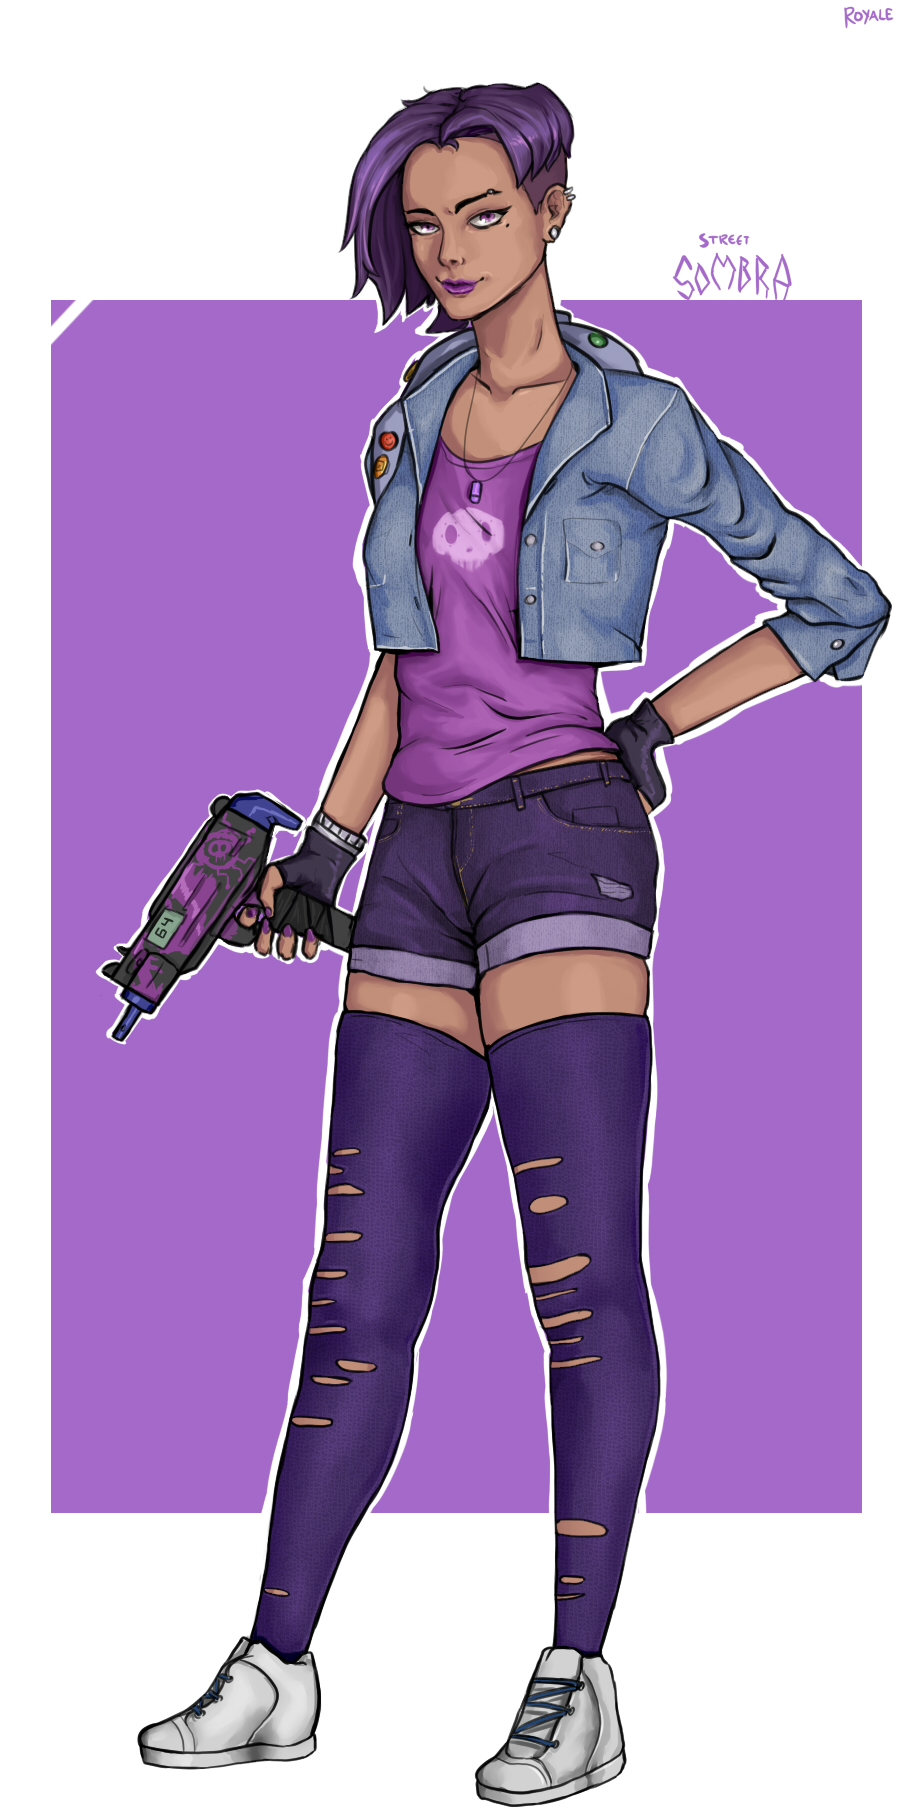 Sombra- Street Skin by RoyaleMay